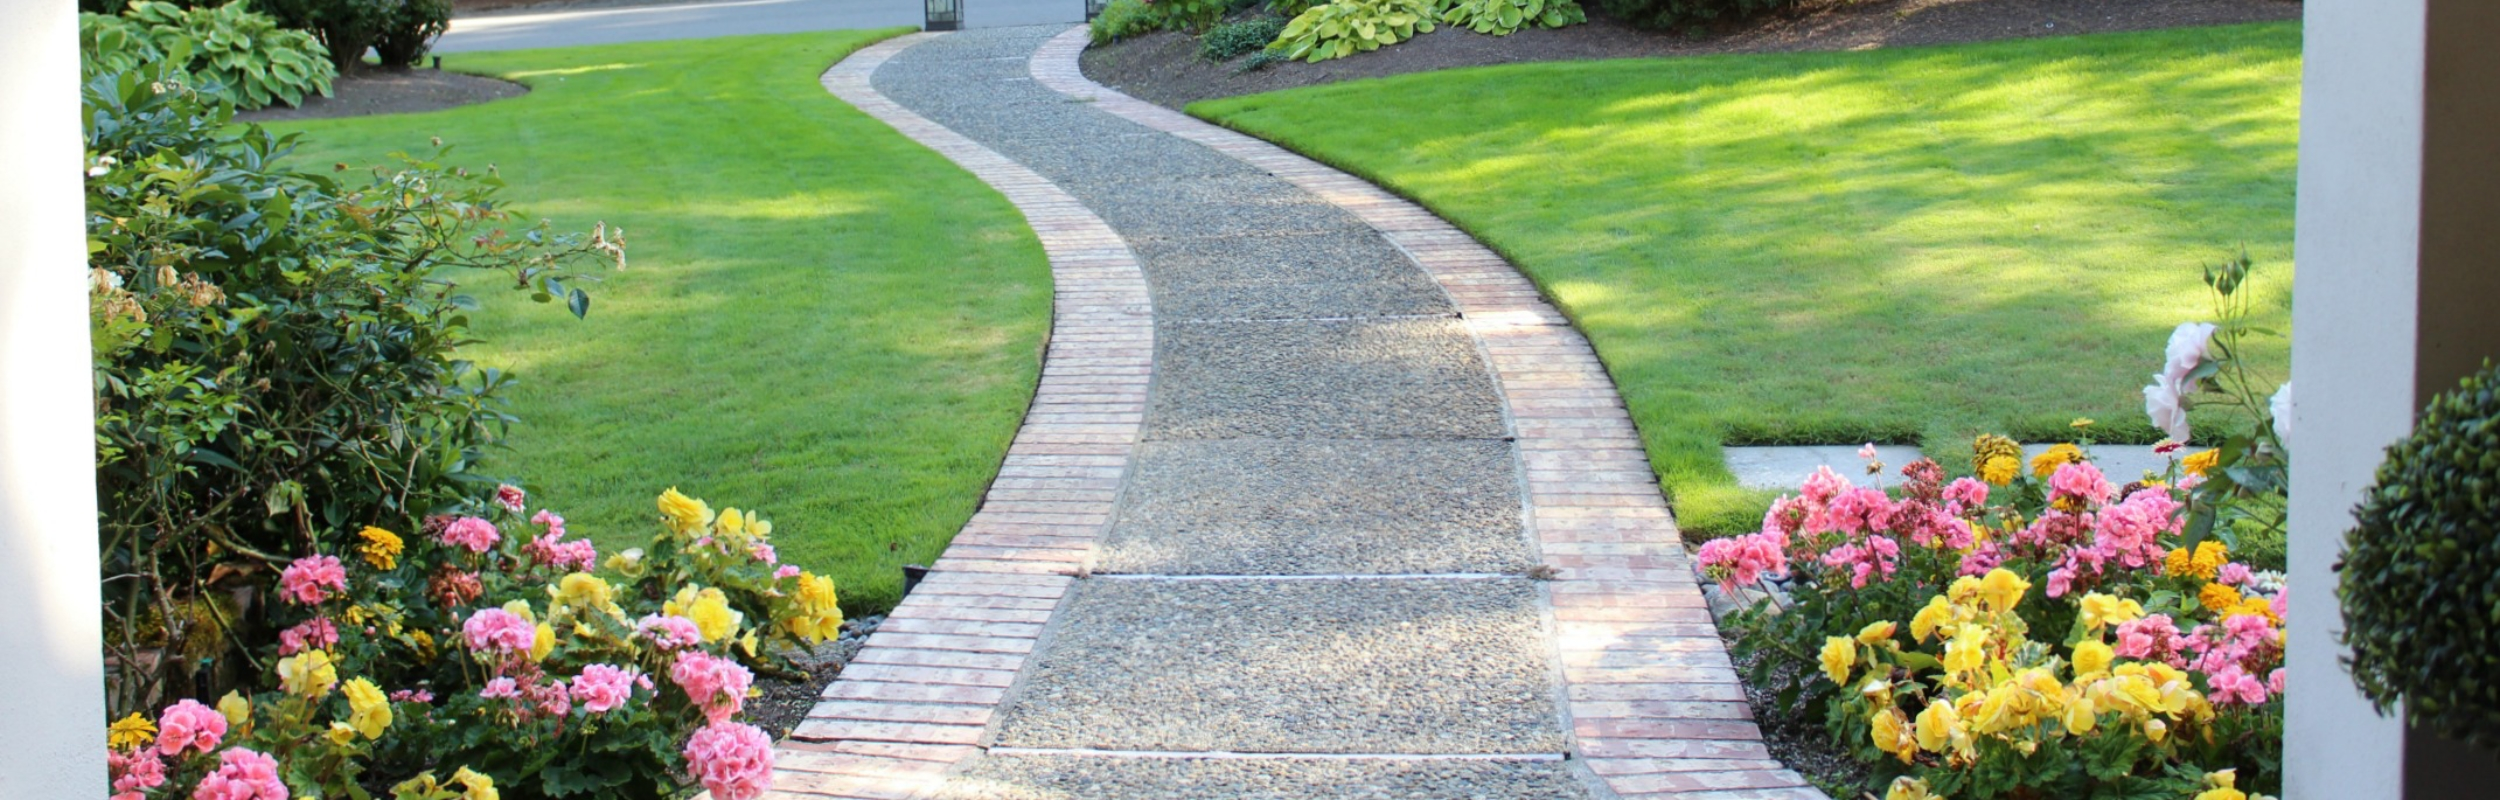 resized slider garden path